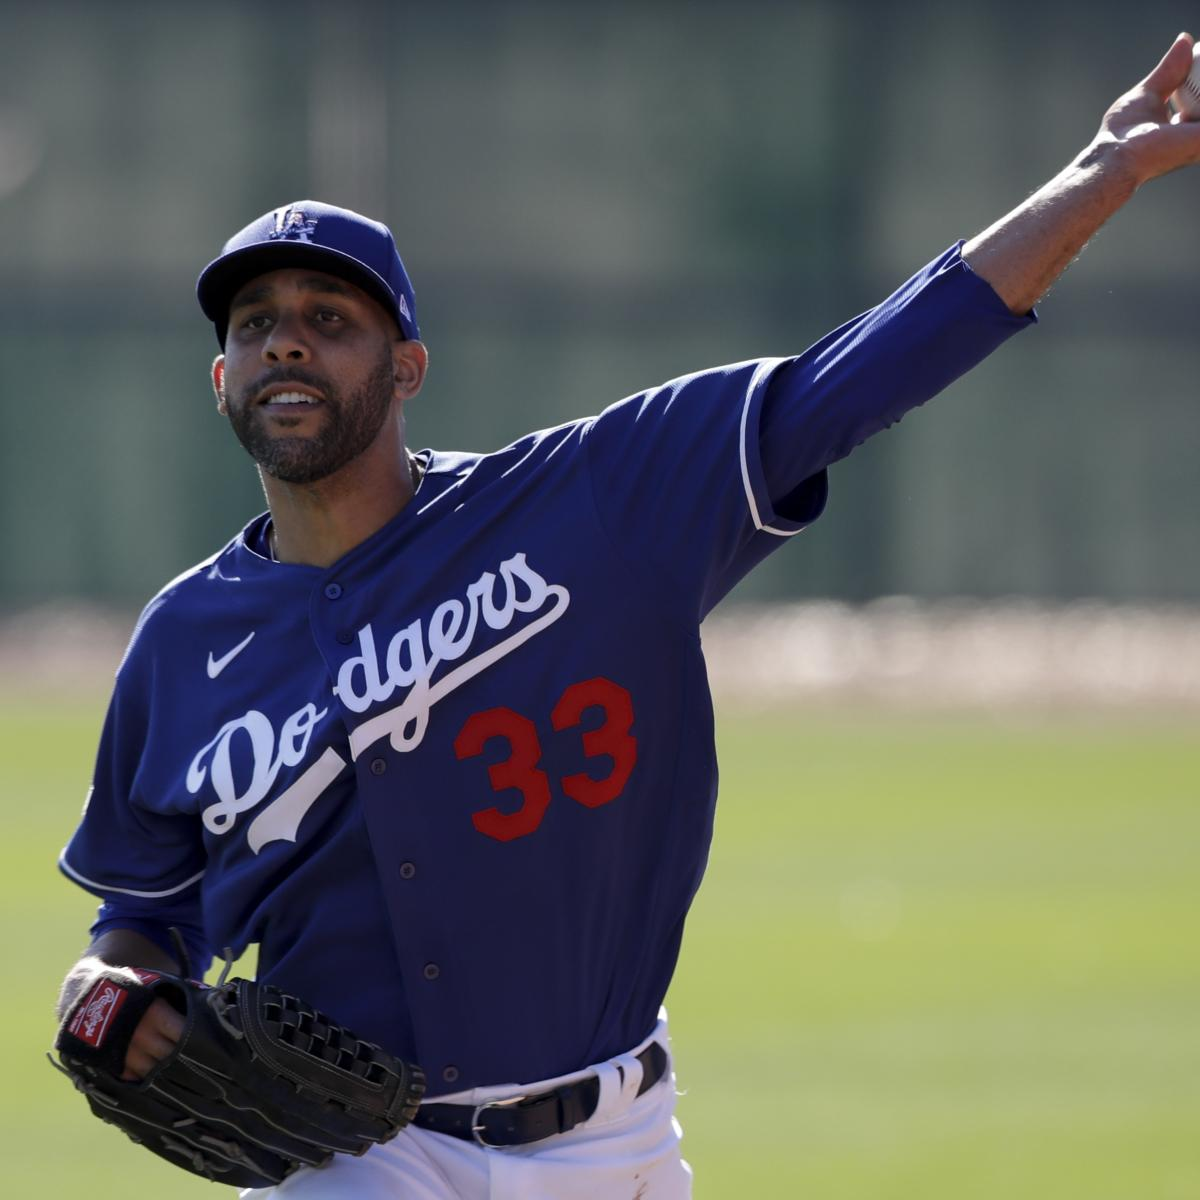 Dodgers' David Price Opts Out of 2020 Season, Cites Family's Health as Priority